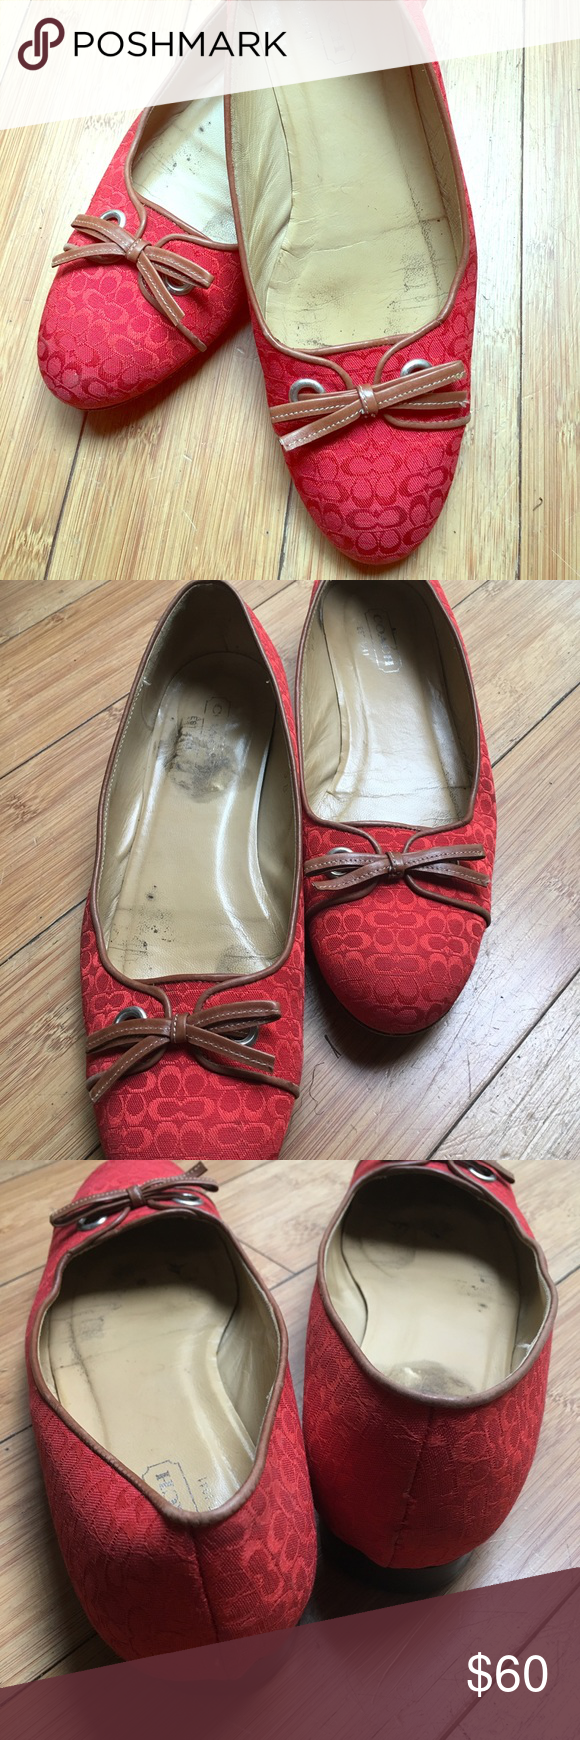 Occasions for all flats